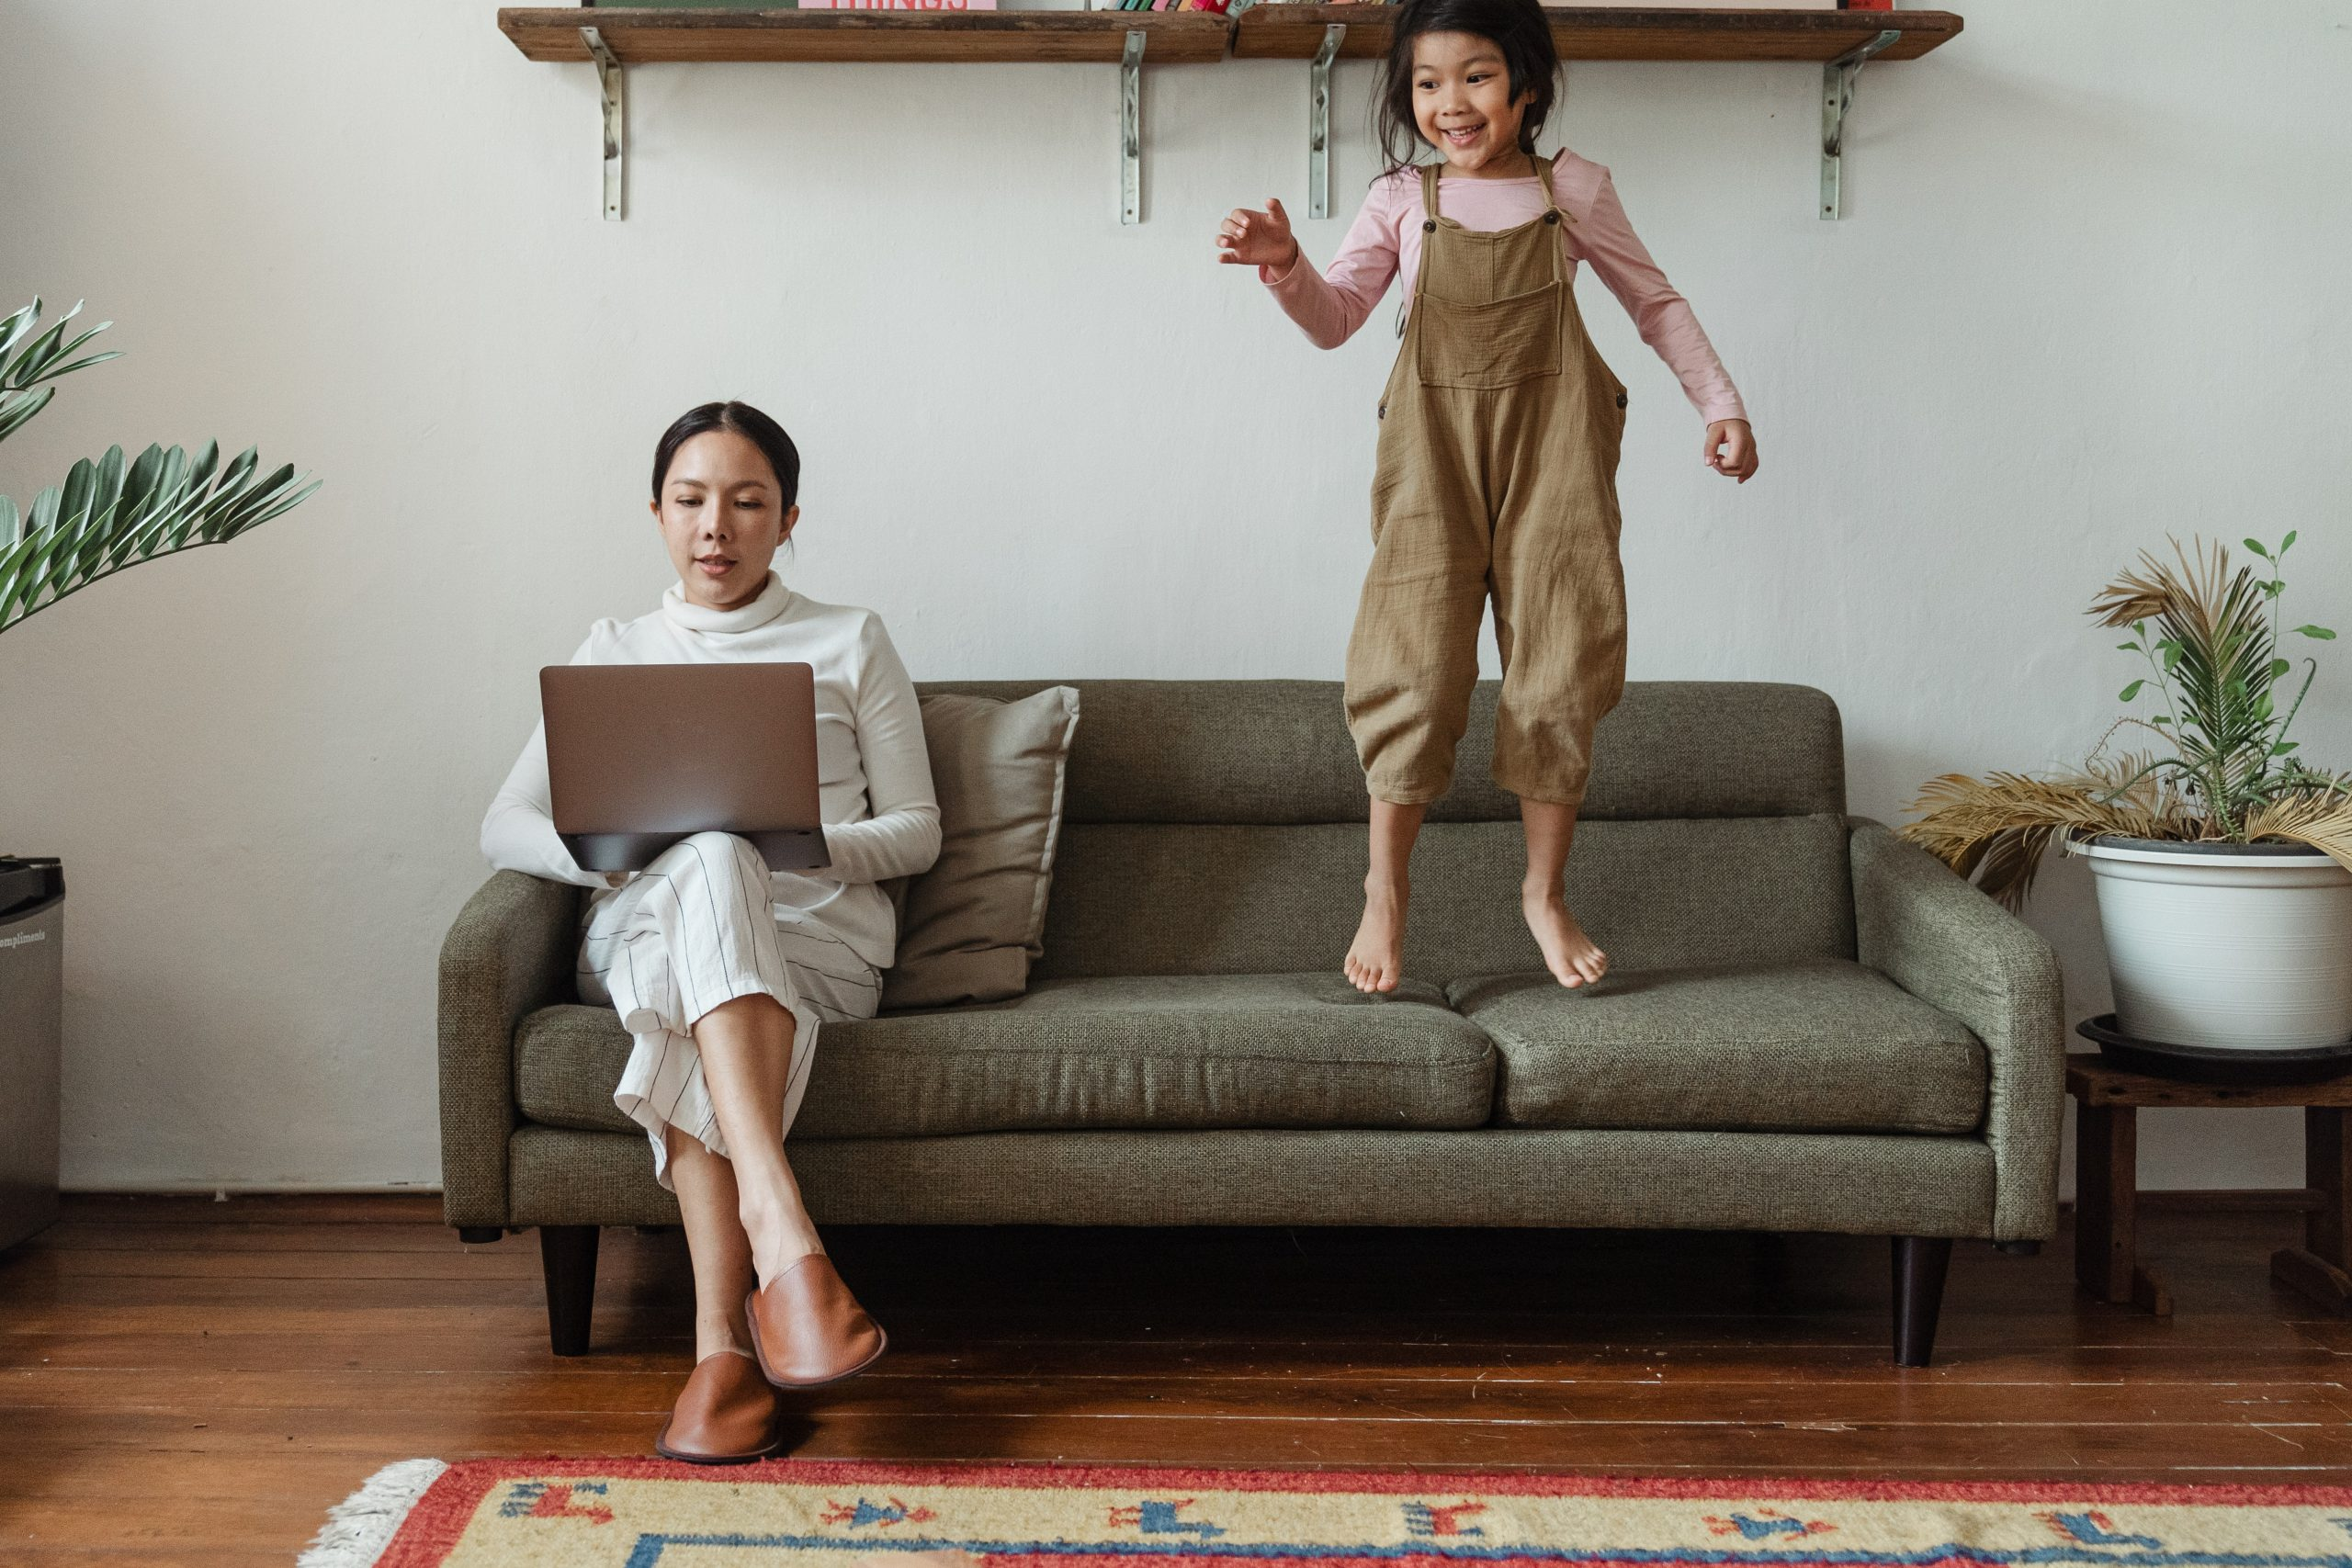 Parent trying to work at home while kid jumps on couch